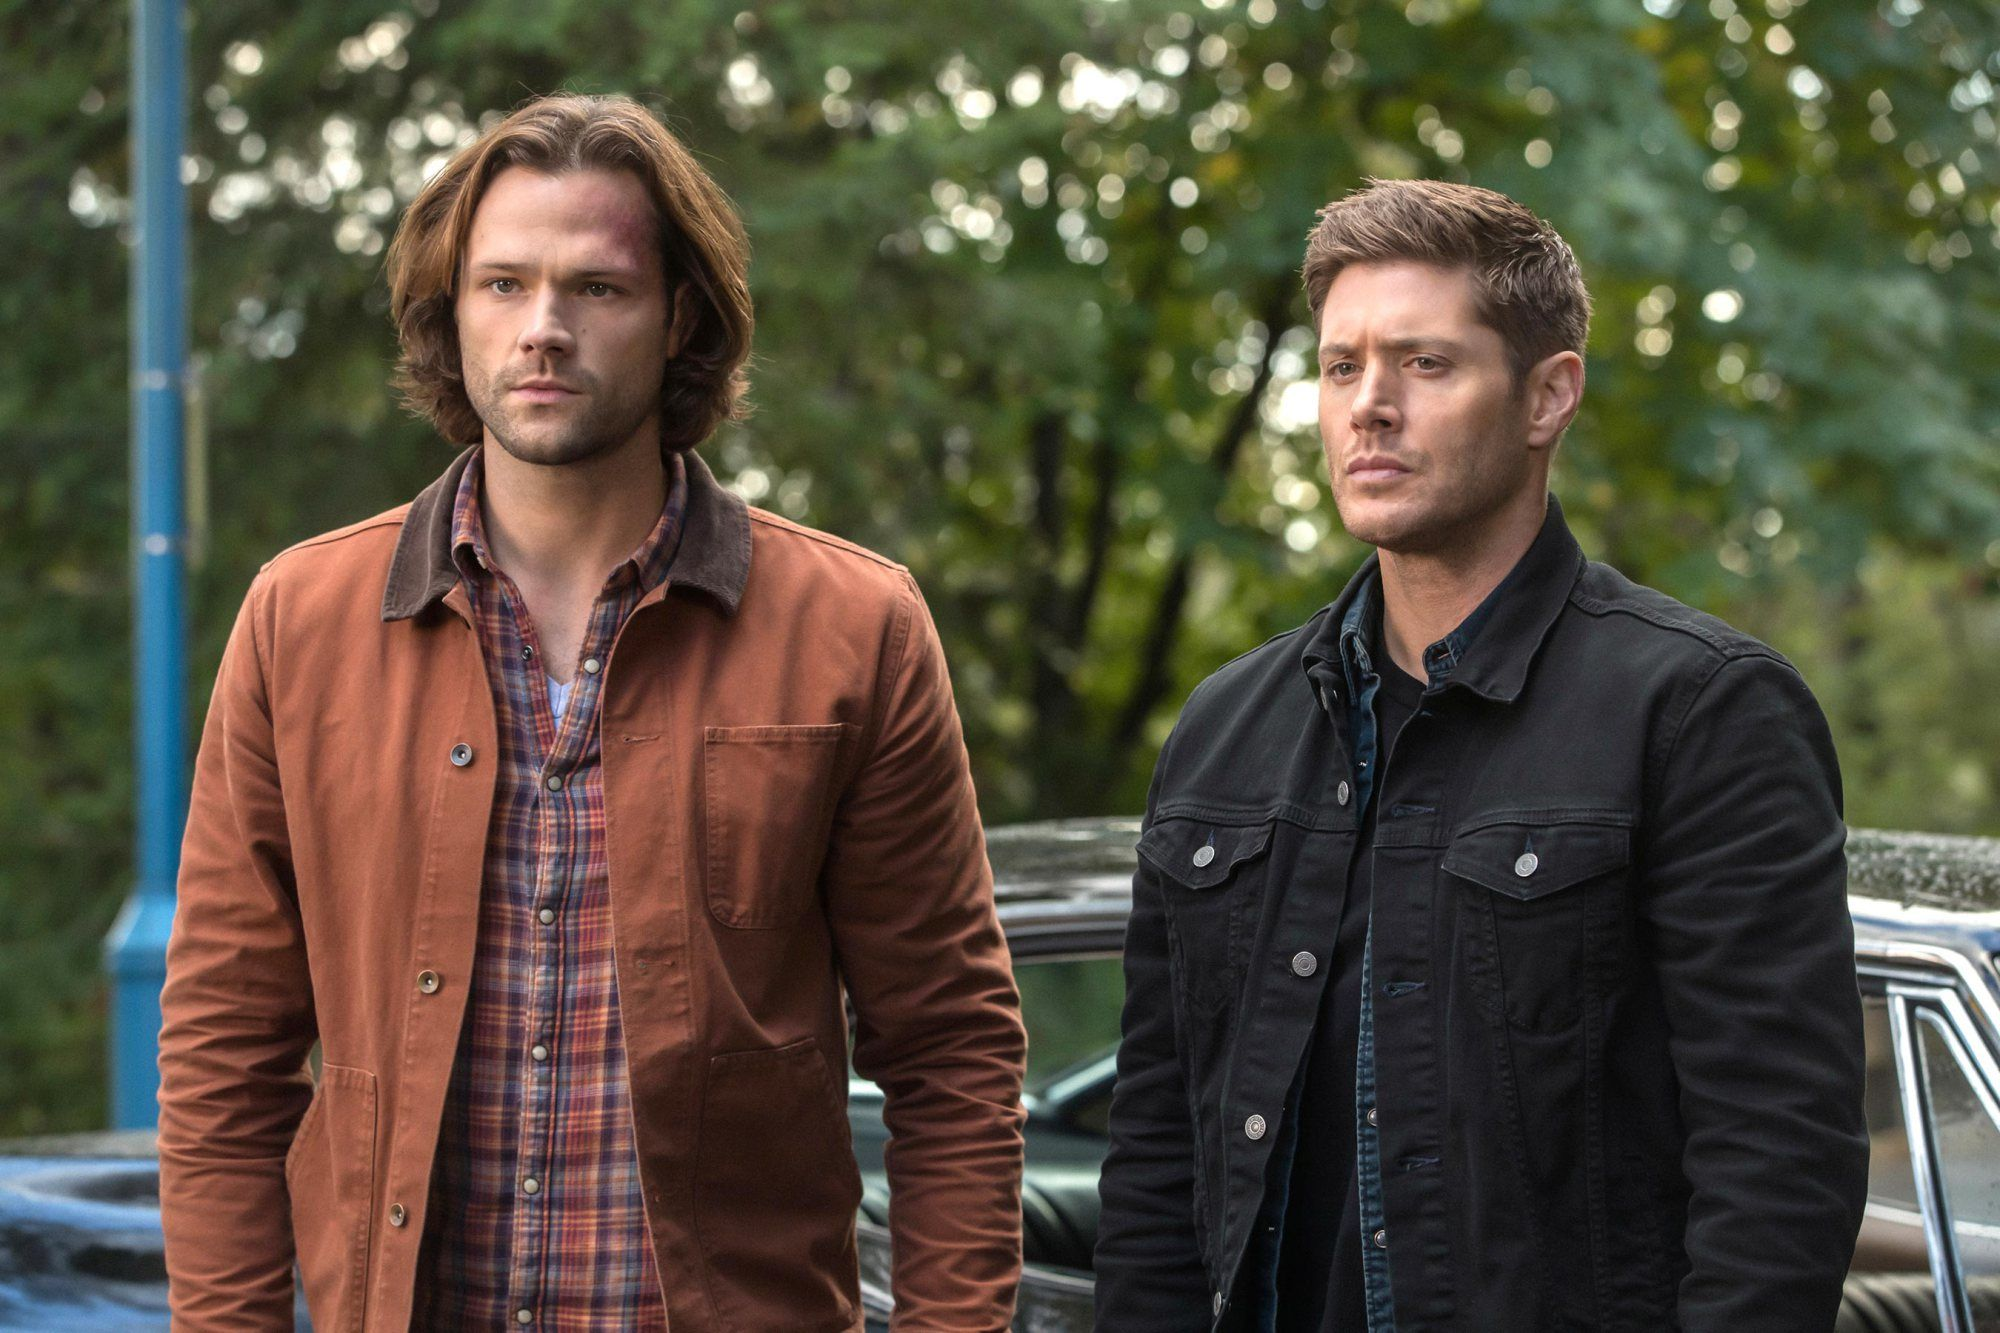 Ackles and Jared behind decision of Supernatural 15 to end the series